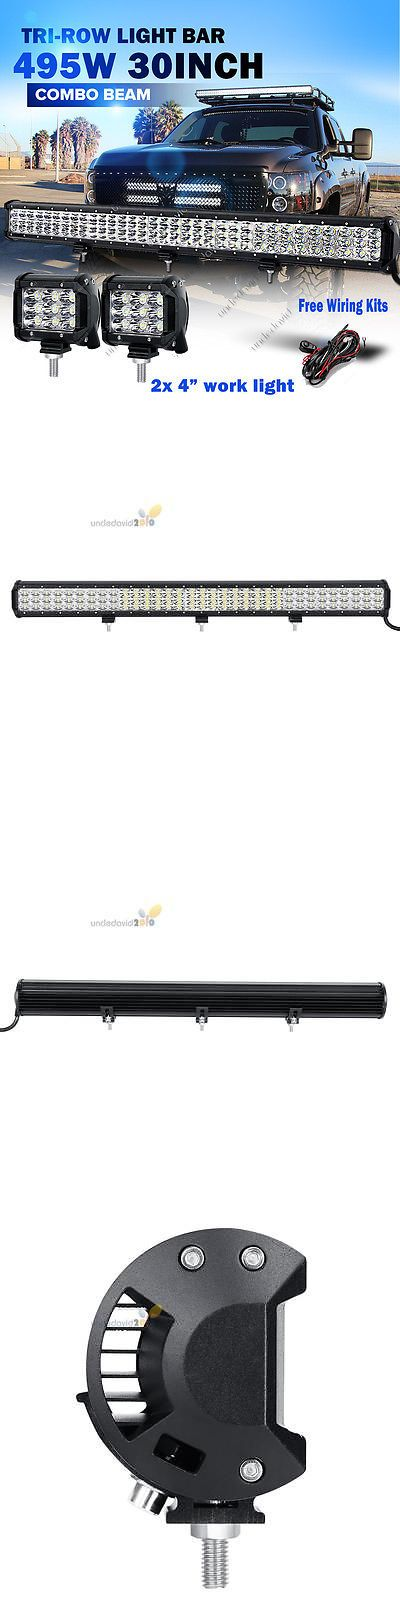 Car Lighting: 30 495W + 2X 45W Cree Tri-Row Led Light Bar Combo Offroad Suv Atv 4Wd Pickup 28 BUY IT NOW ONLY: $99.99